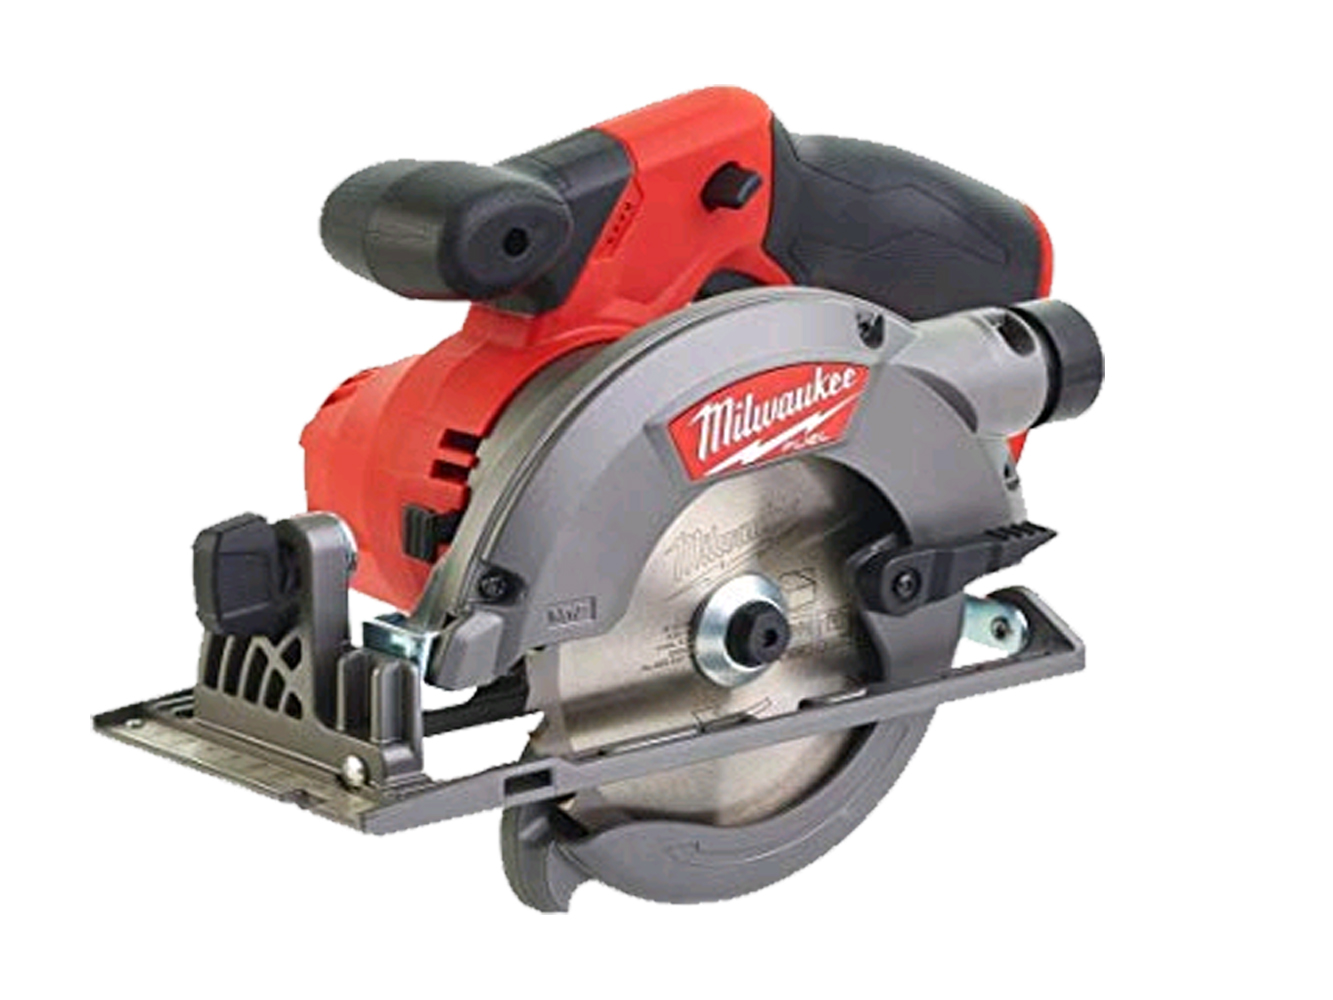 Milwaukee M12CCS44 12V Sub Compact 140mm (44mm) Circular Saw Brushless - Body Only